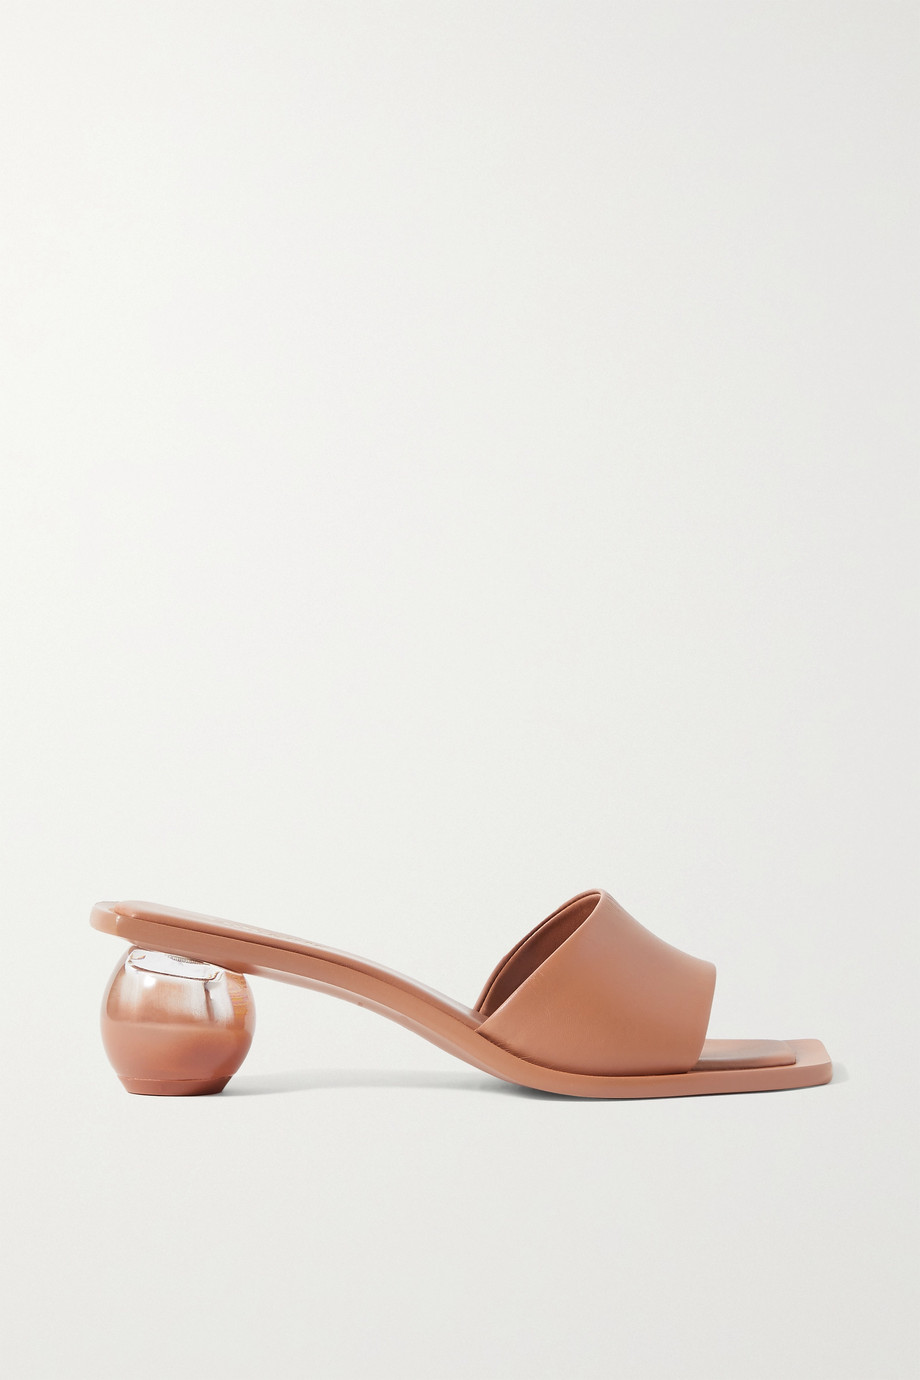 CULT GAIA Tao leather sandals